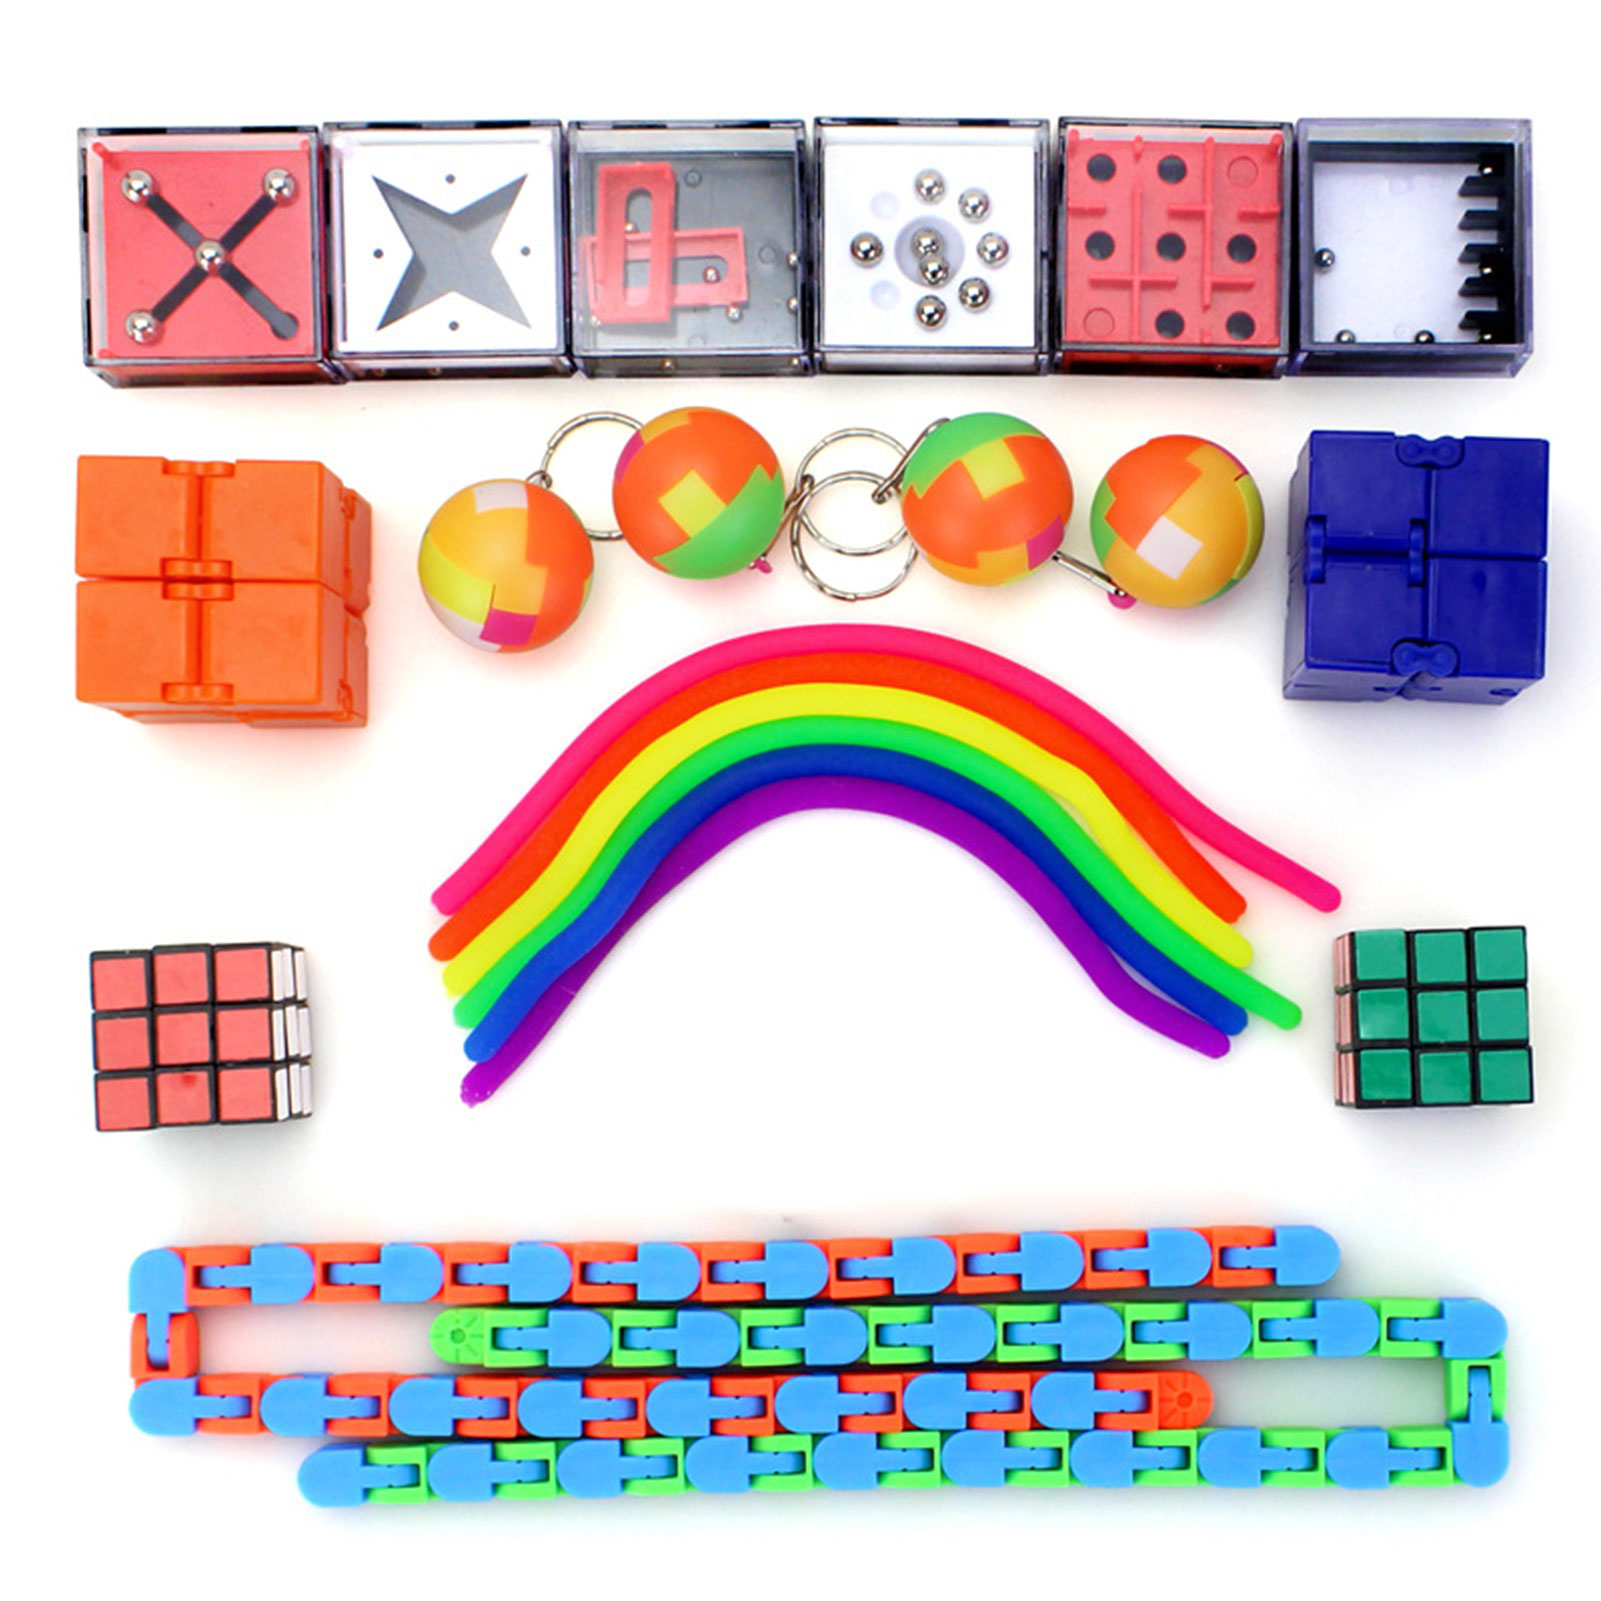 24pcs/set Sensory Toys Party Favors Hand Fidget Toys For Kids Adult Antistess Autism Special Needs Stress Reliever Toys enlarge